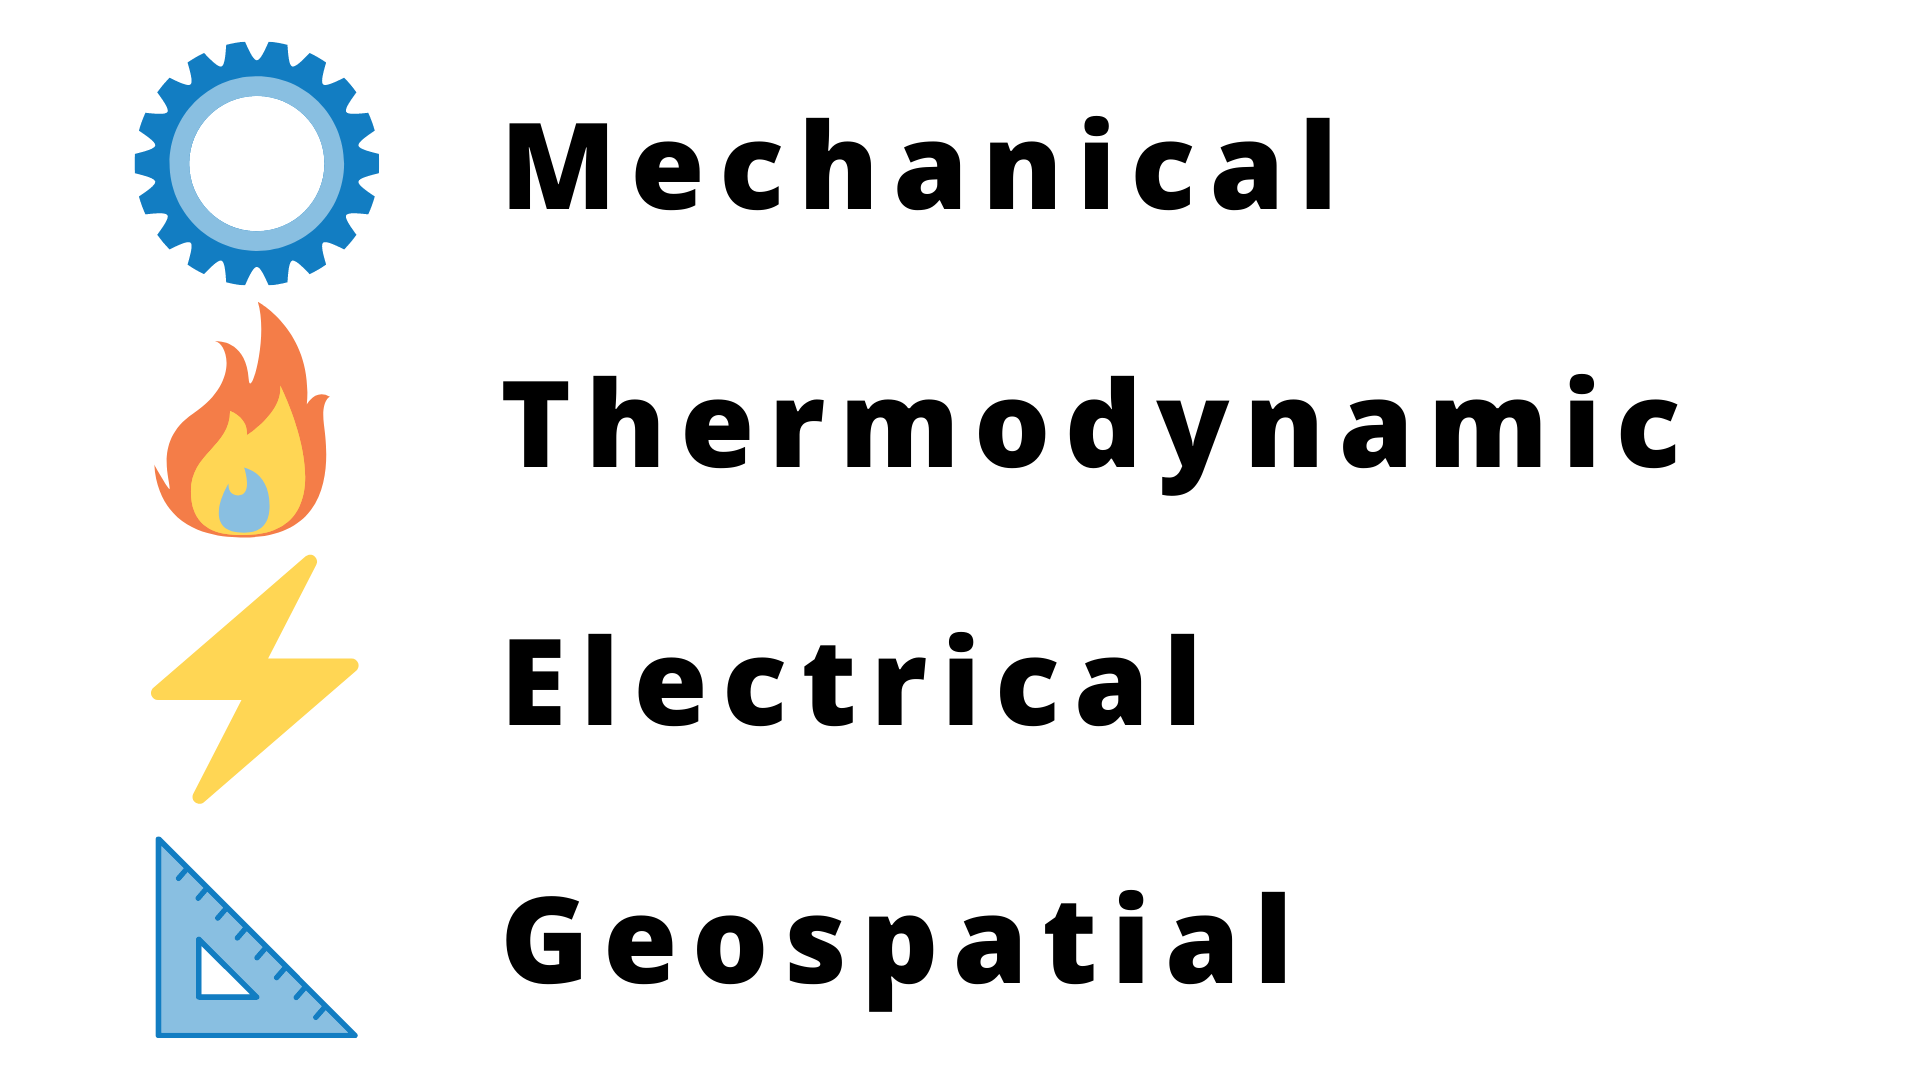 Mechanical Thermodynamic Electrical Geospatial iot sensors